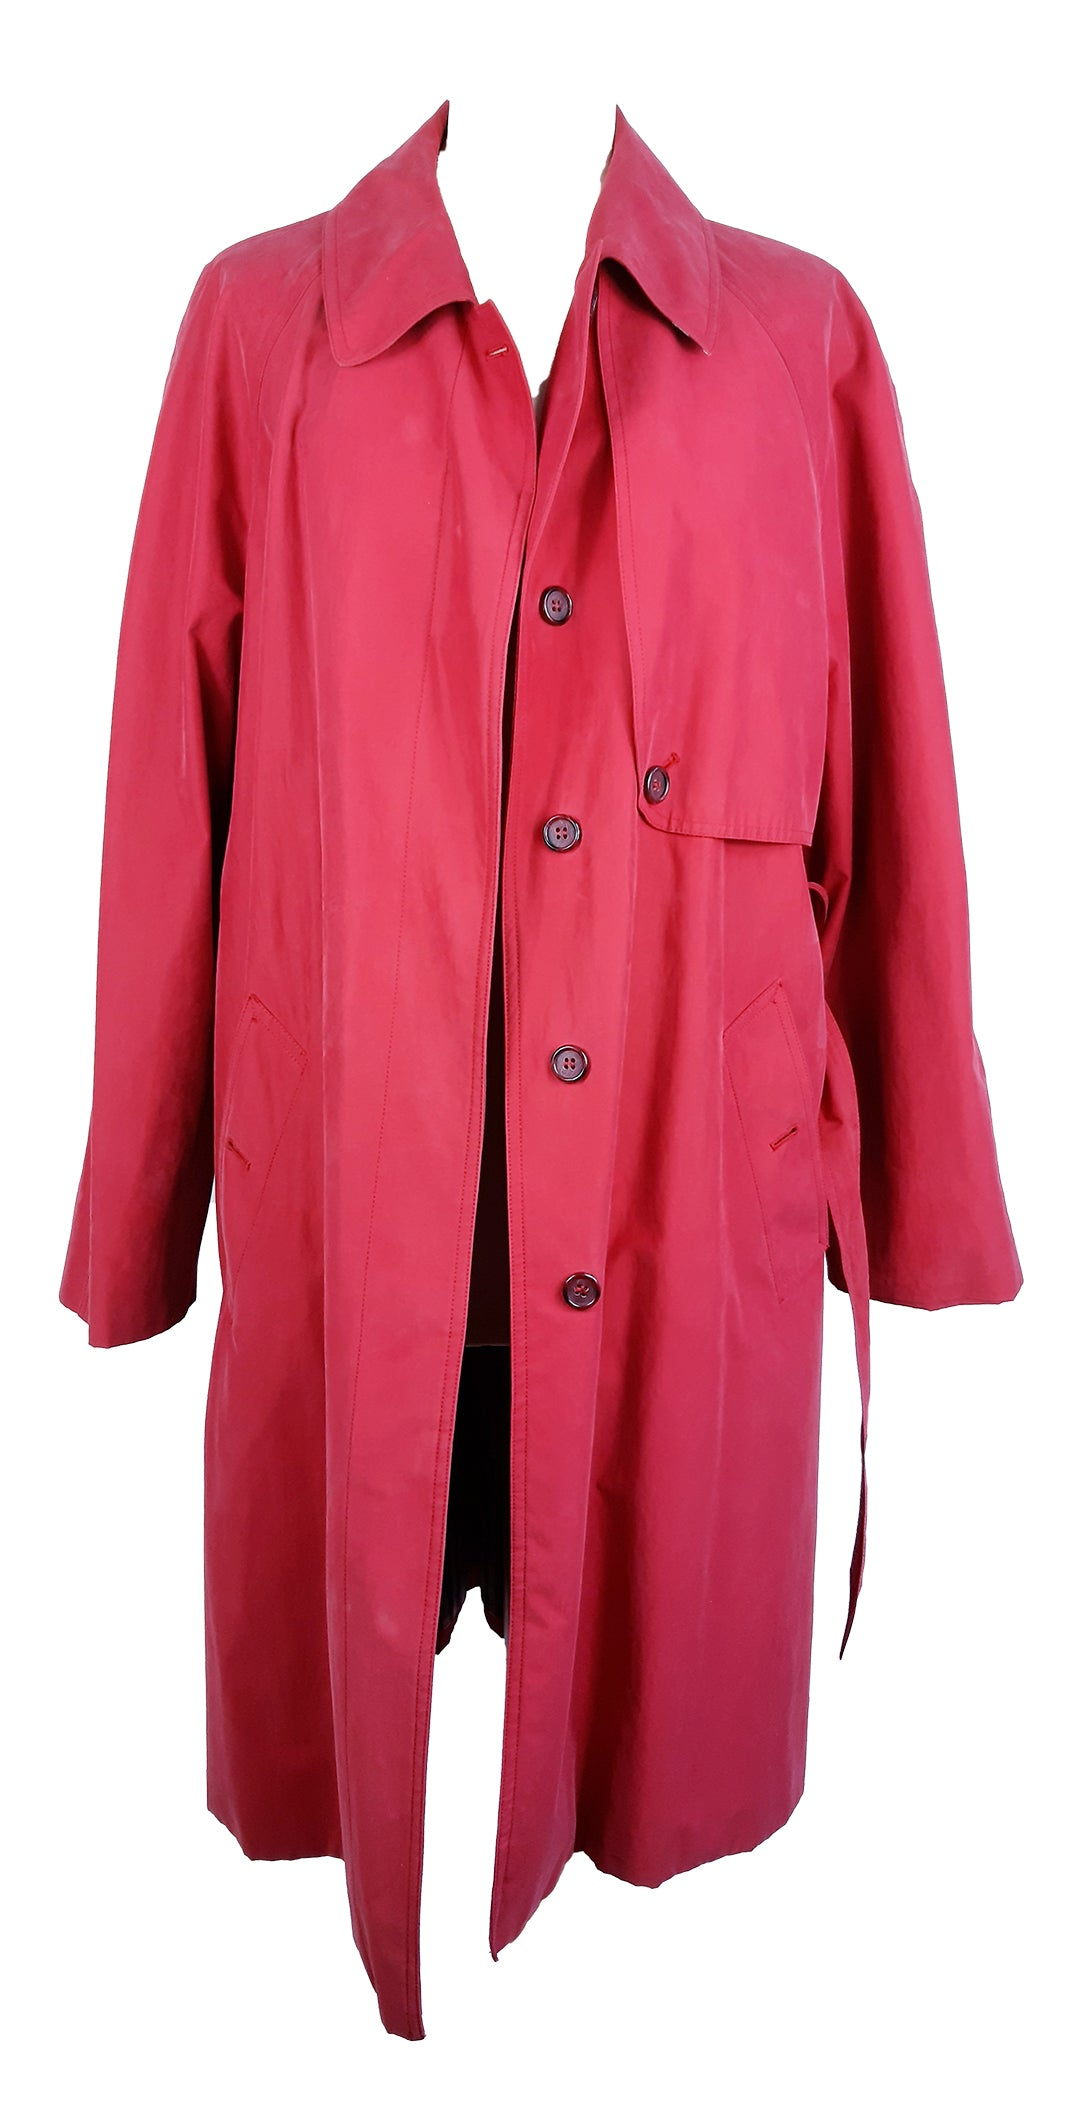 Authentic 'Burberrys' Prorsum Vintage Trench Coat in Red with Blue Lining Size 44 (EU)